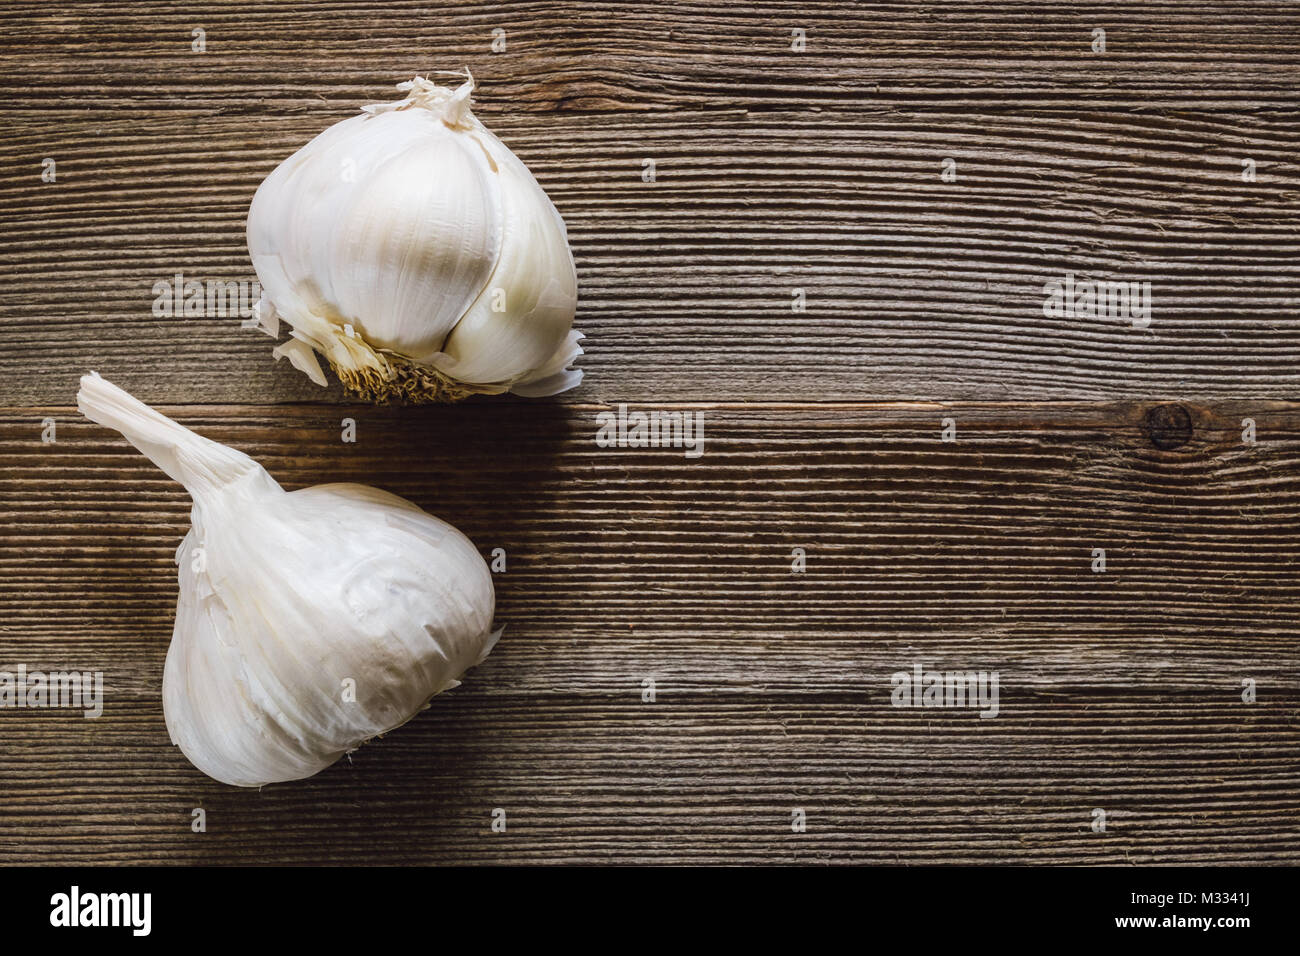 Heads of Garlic on Rustic Wooden Table with Room for Copy Stock Photo